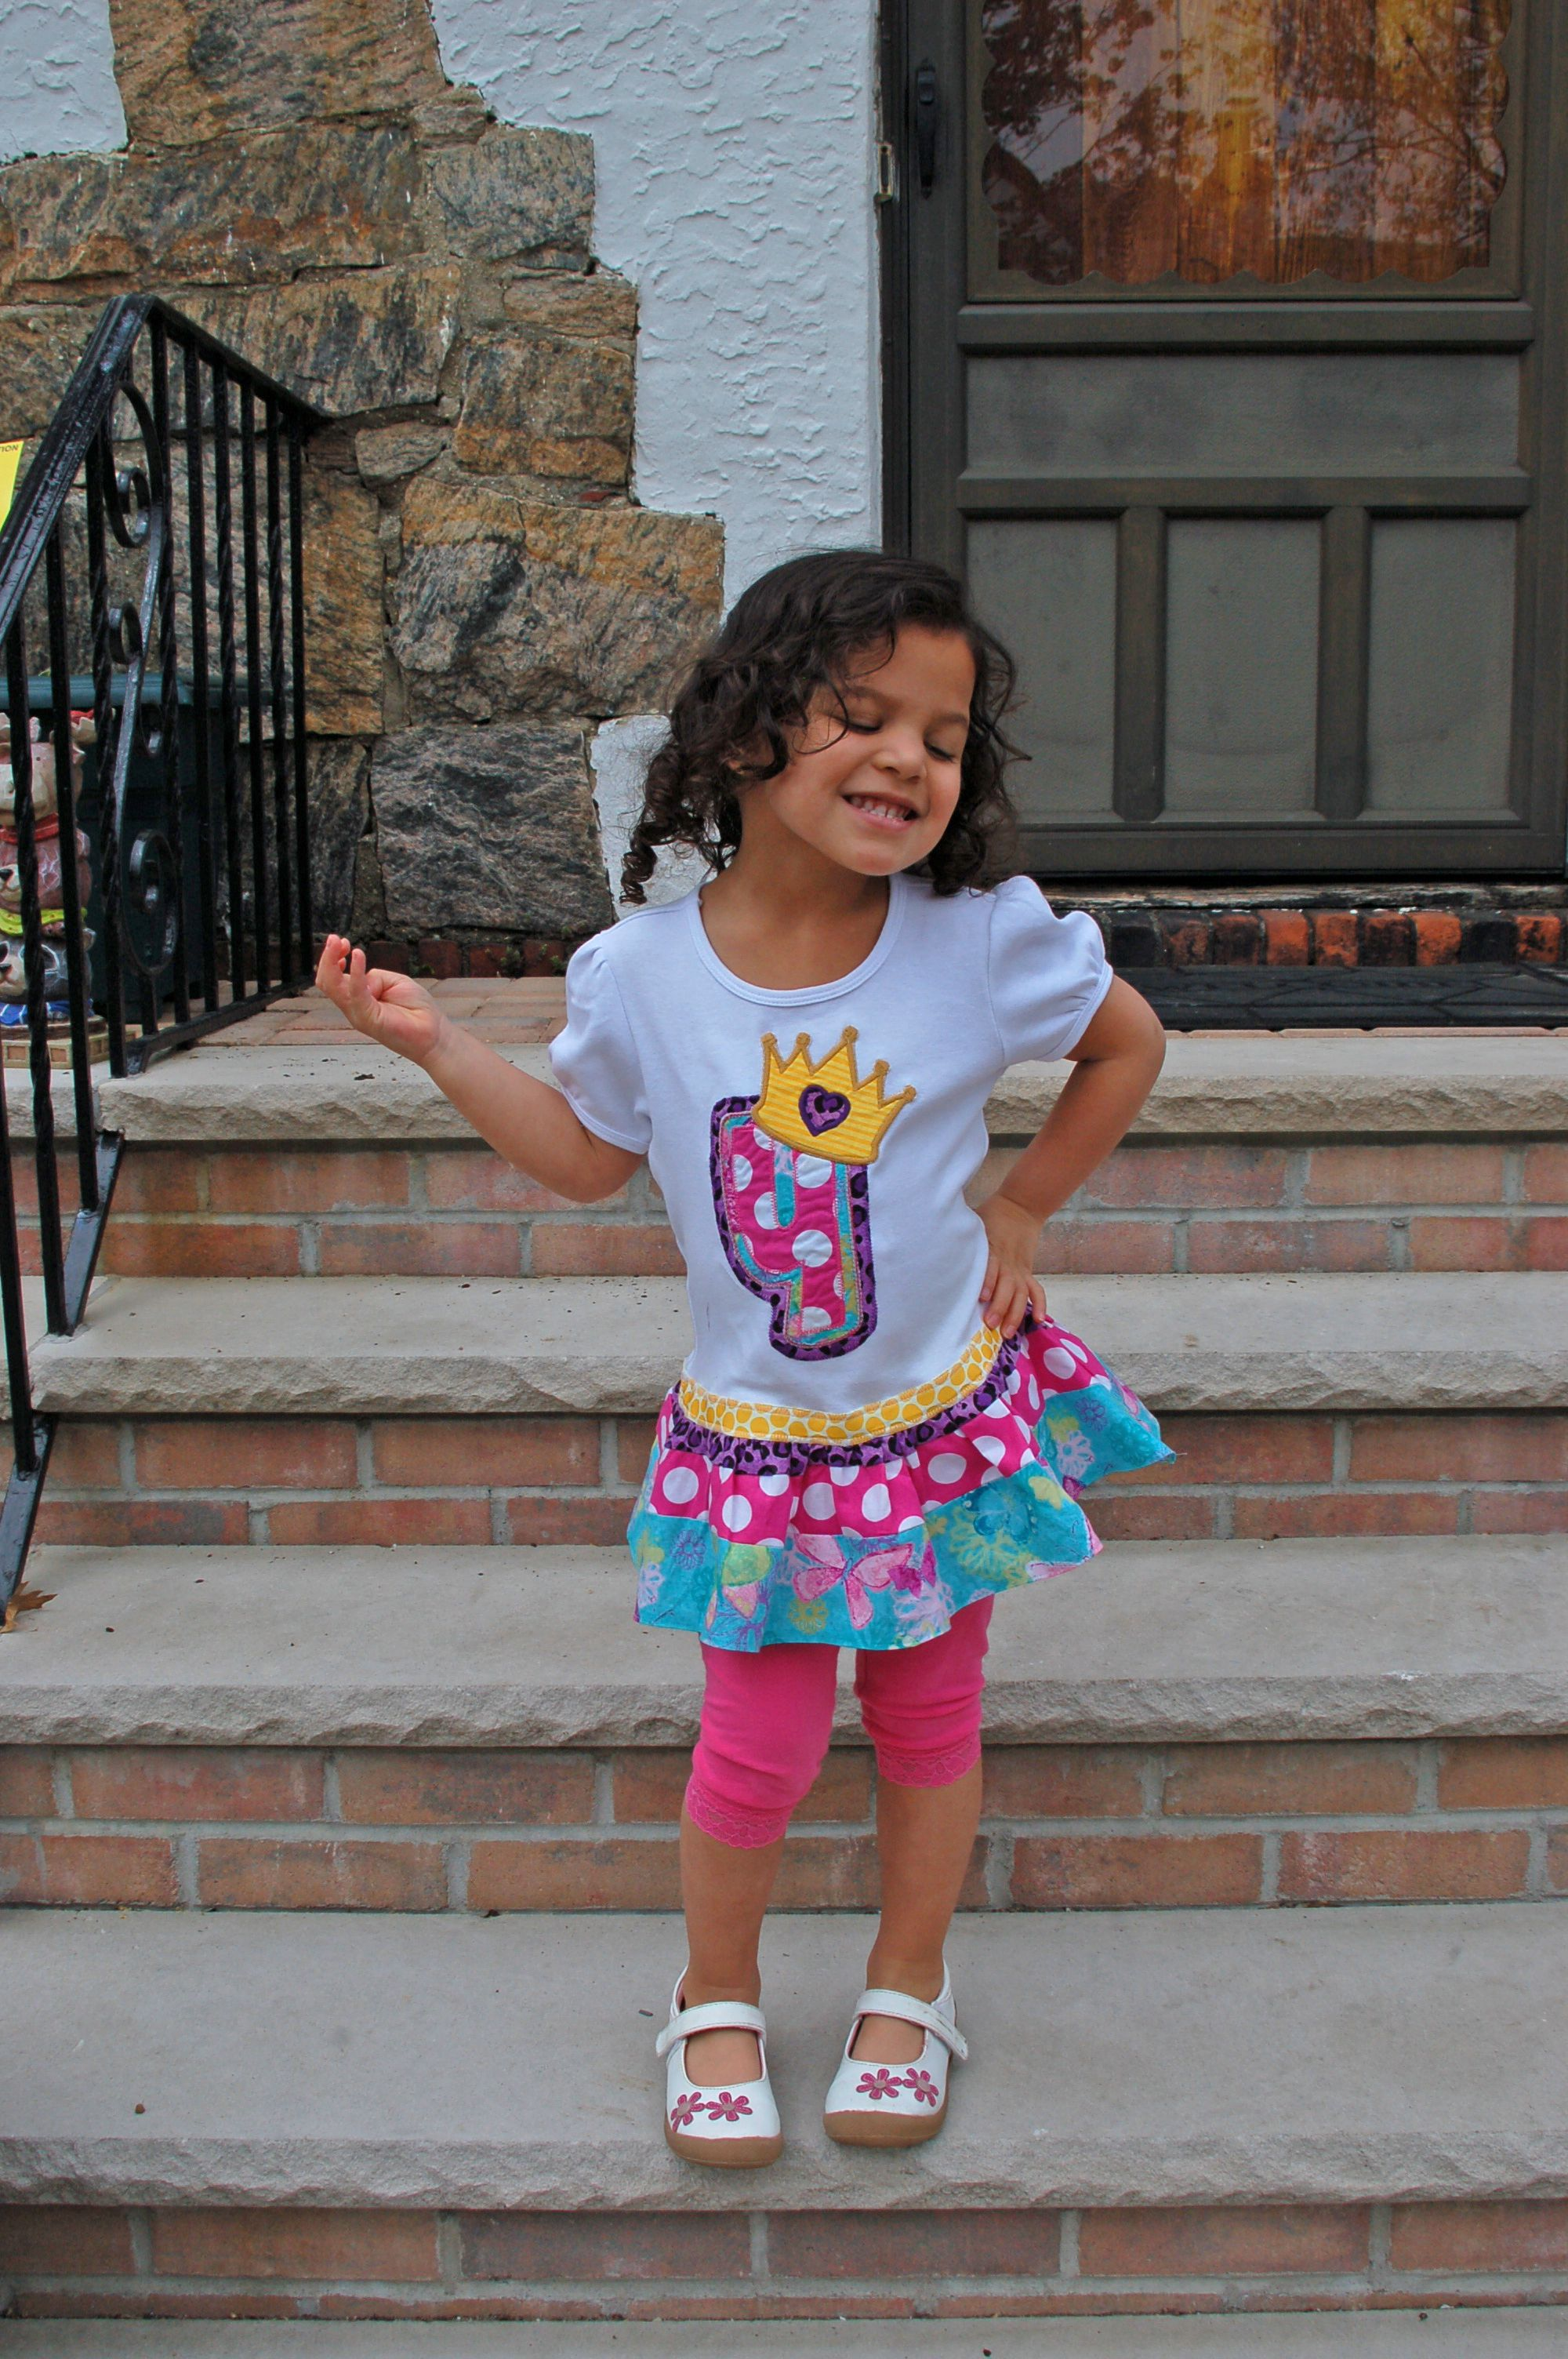 perfect birthday dress for such an adorable little girl!!